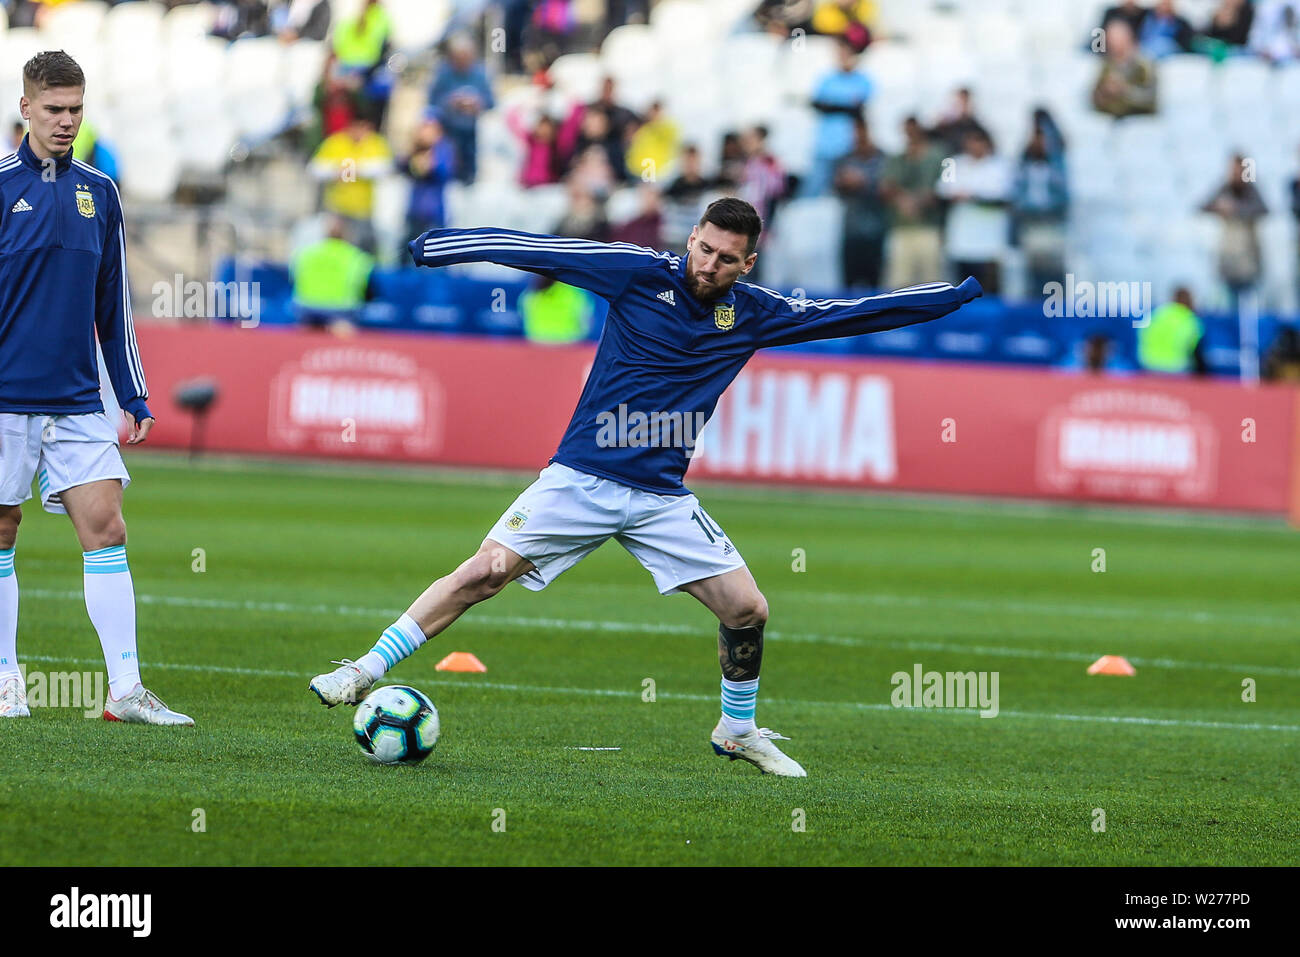 Brazil. 6th July, 2019. Messi in the Game of the match between Argentina X Chile valid for third place dispute of Copa America 2019, in the Arena Corinthians, in São Paulo, this Saturday (06). Photo: Geraldo Bubniak Credit: Geraldo Bubniak/ZUMA Wire/Alamy Live News Stock Photo